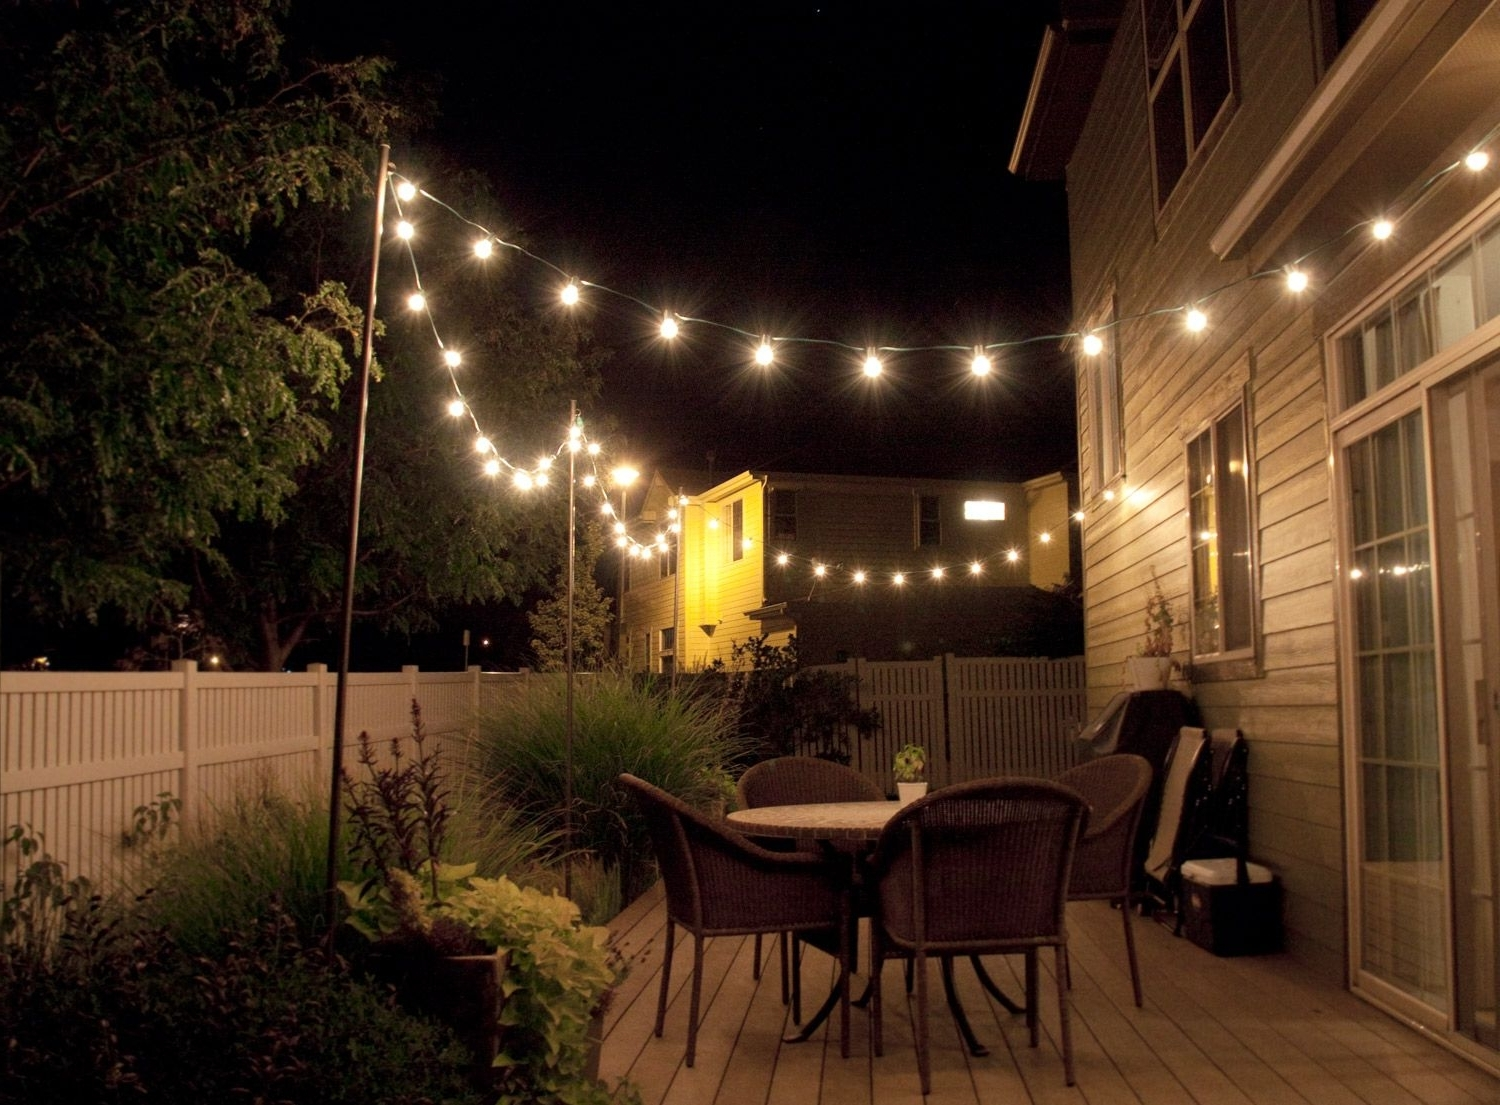 2019 Pole Hanging Outdoor Lights With Regard To How To Make Inexpensive Poles To Hang String Lights On – Café Style (Gallery 5 of 20)